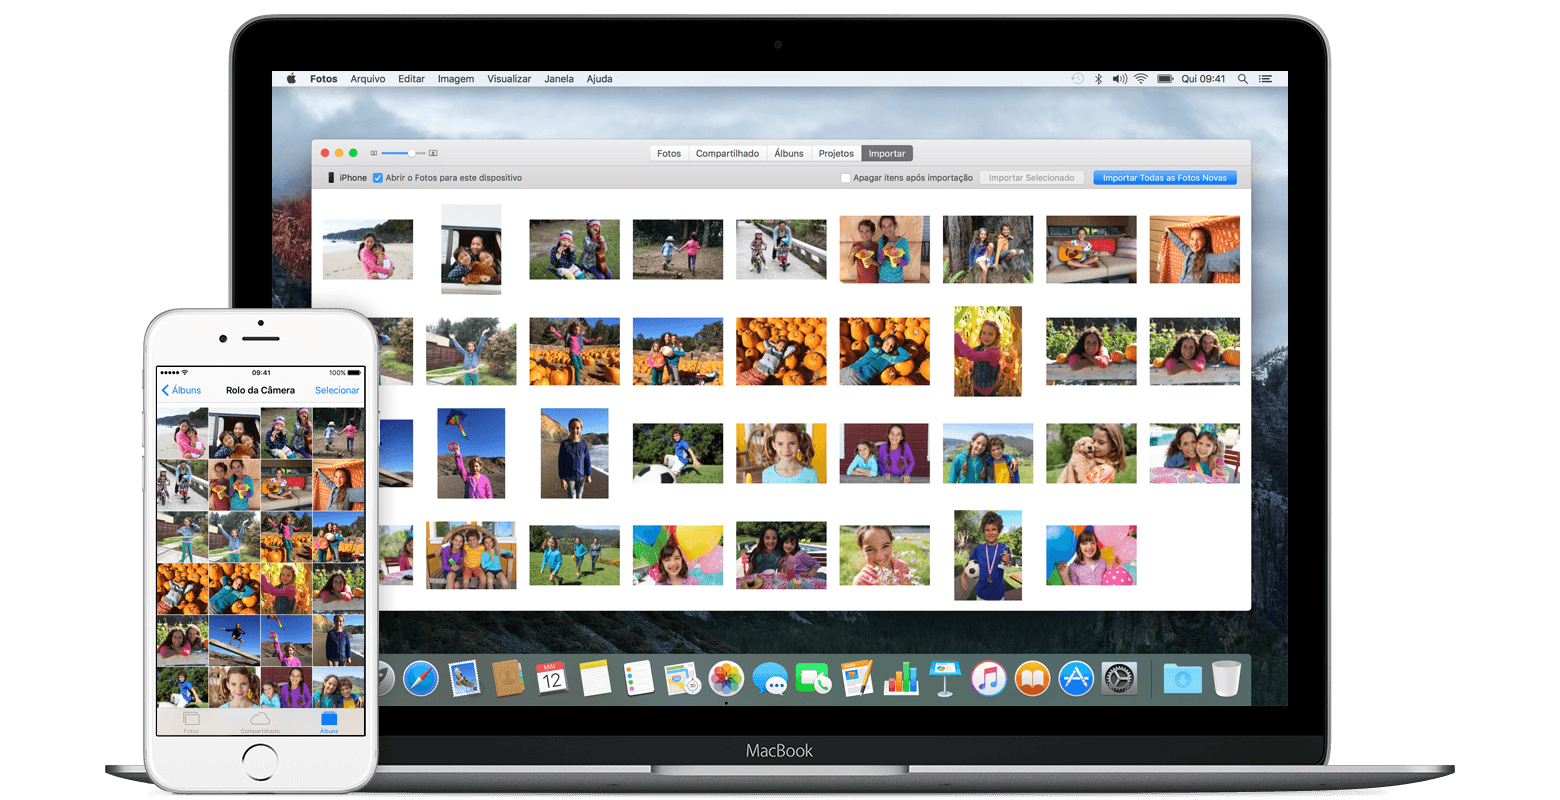 Losing Free Space On iPhone? Must-Know Tricks To Transfer Photos To PC